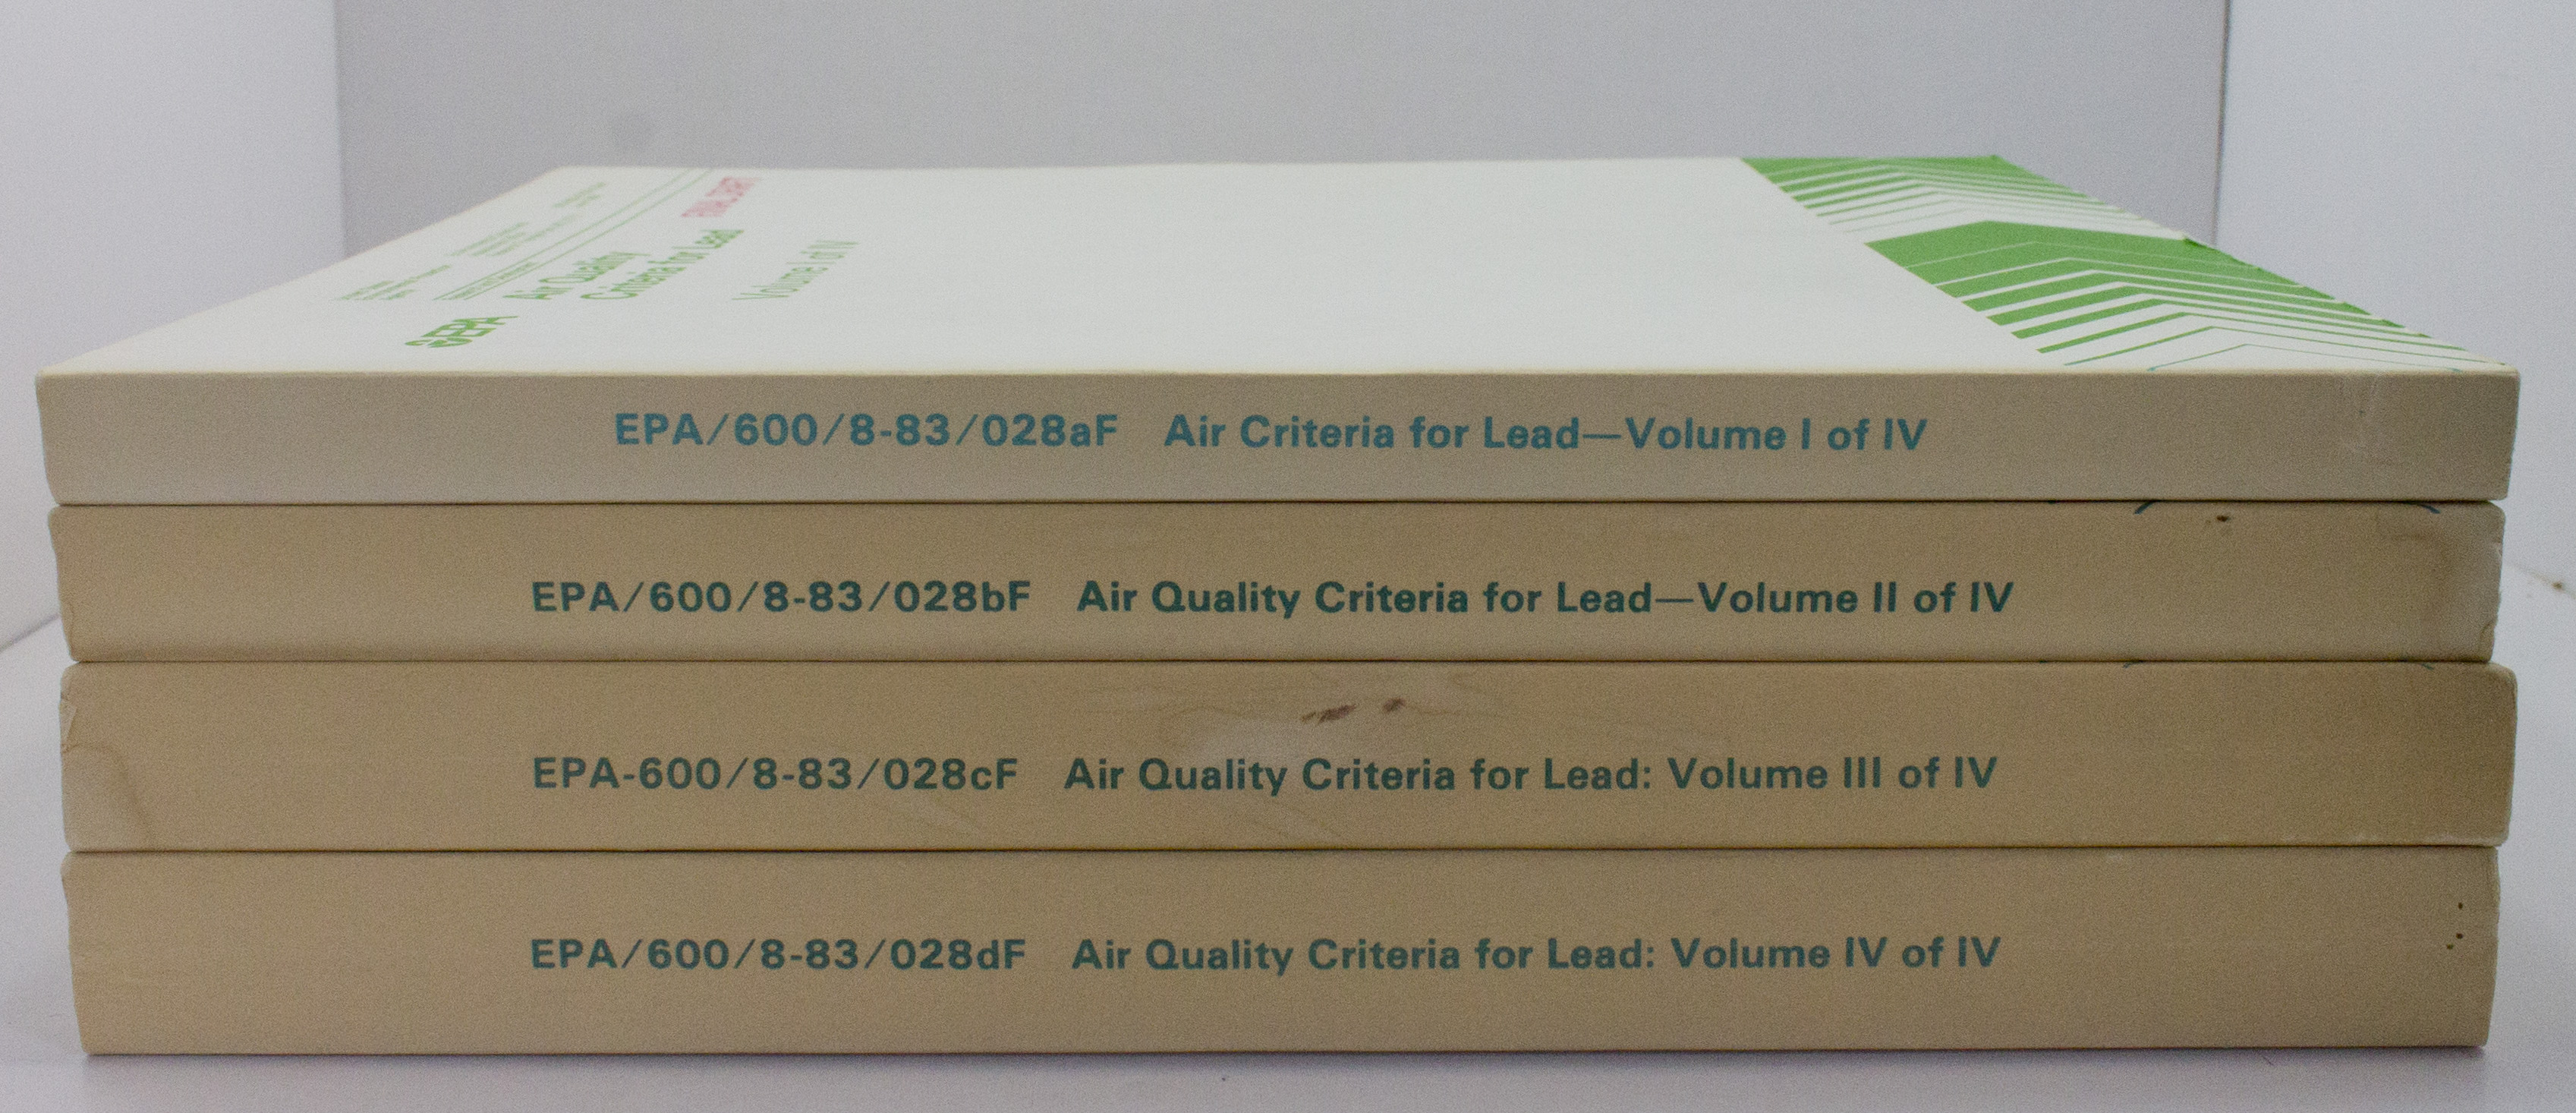 Air Quality Criteria for Lead (4 volumes)by: N/A - Product Image